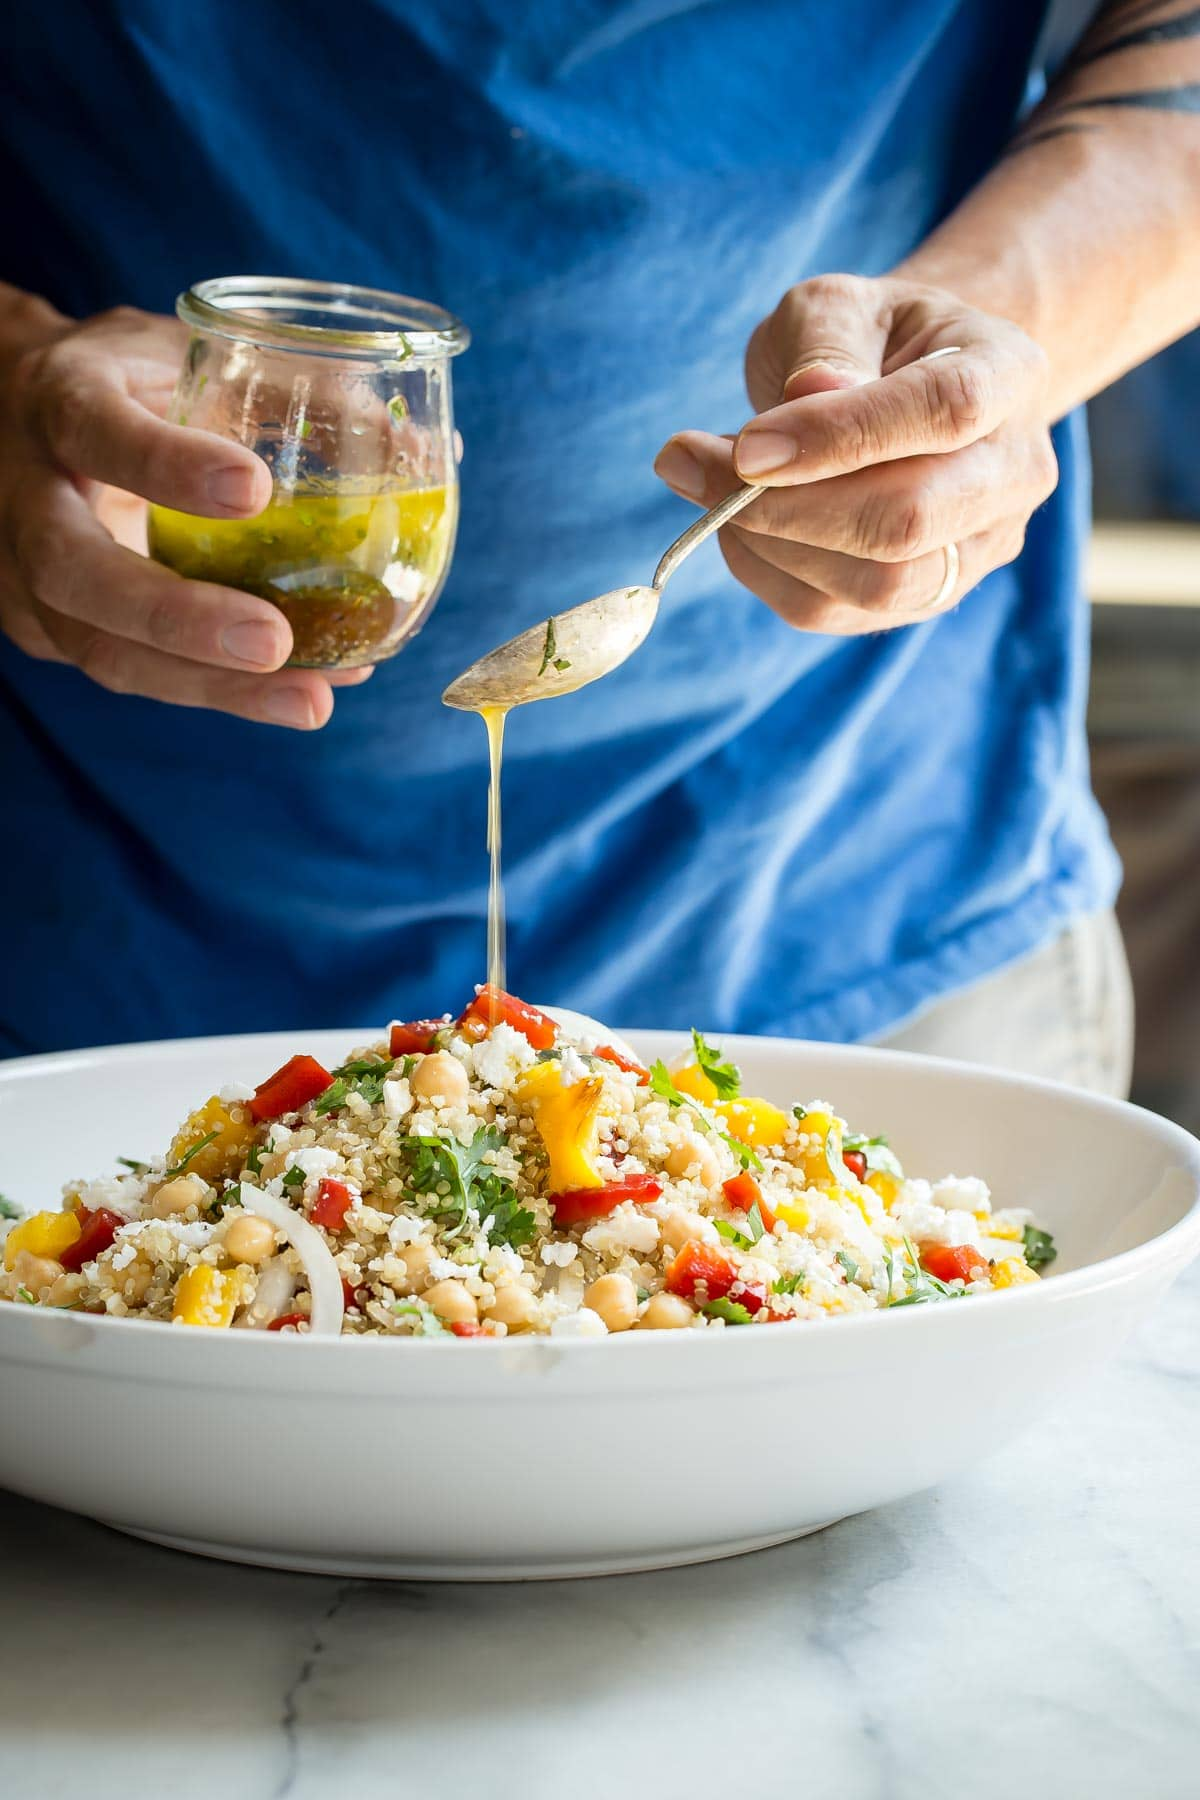 Pouring olive oil herb dressing over my healthy quinoa salad